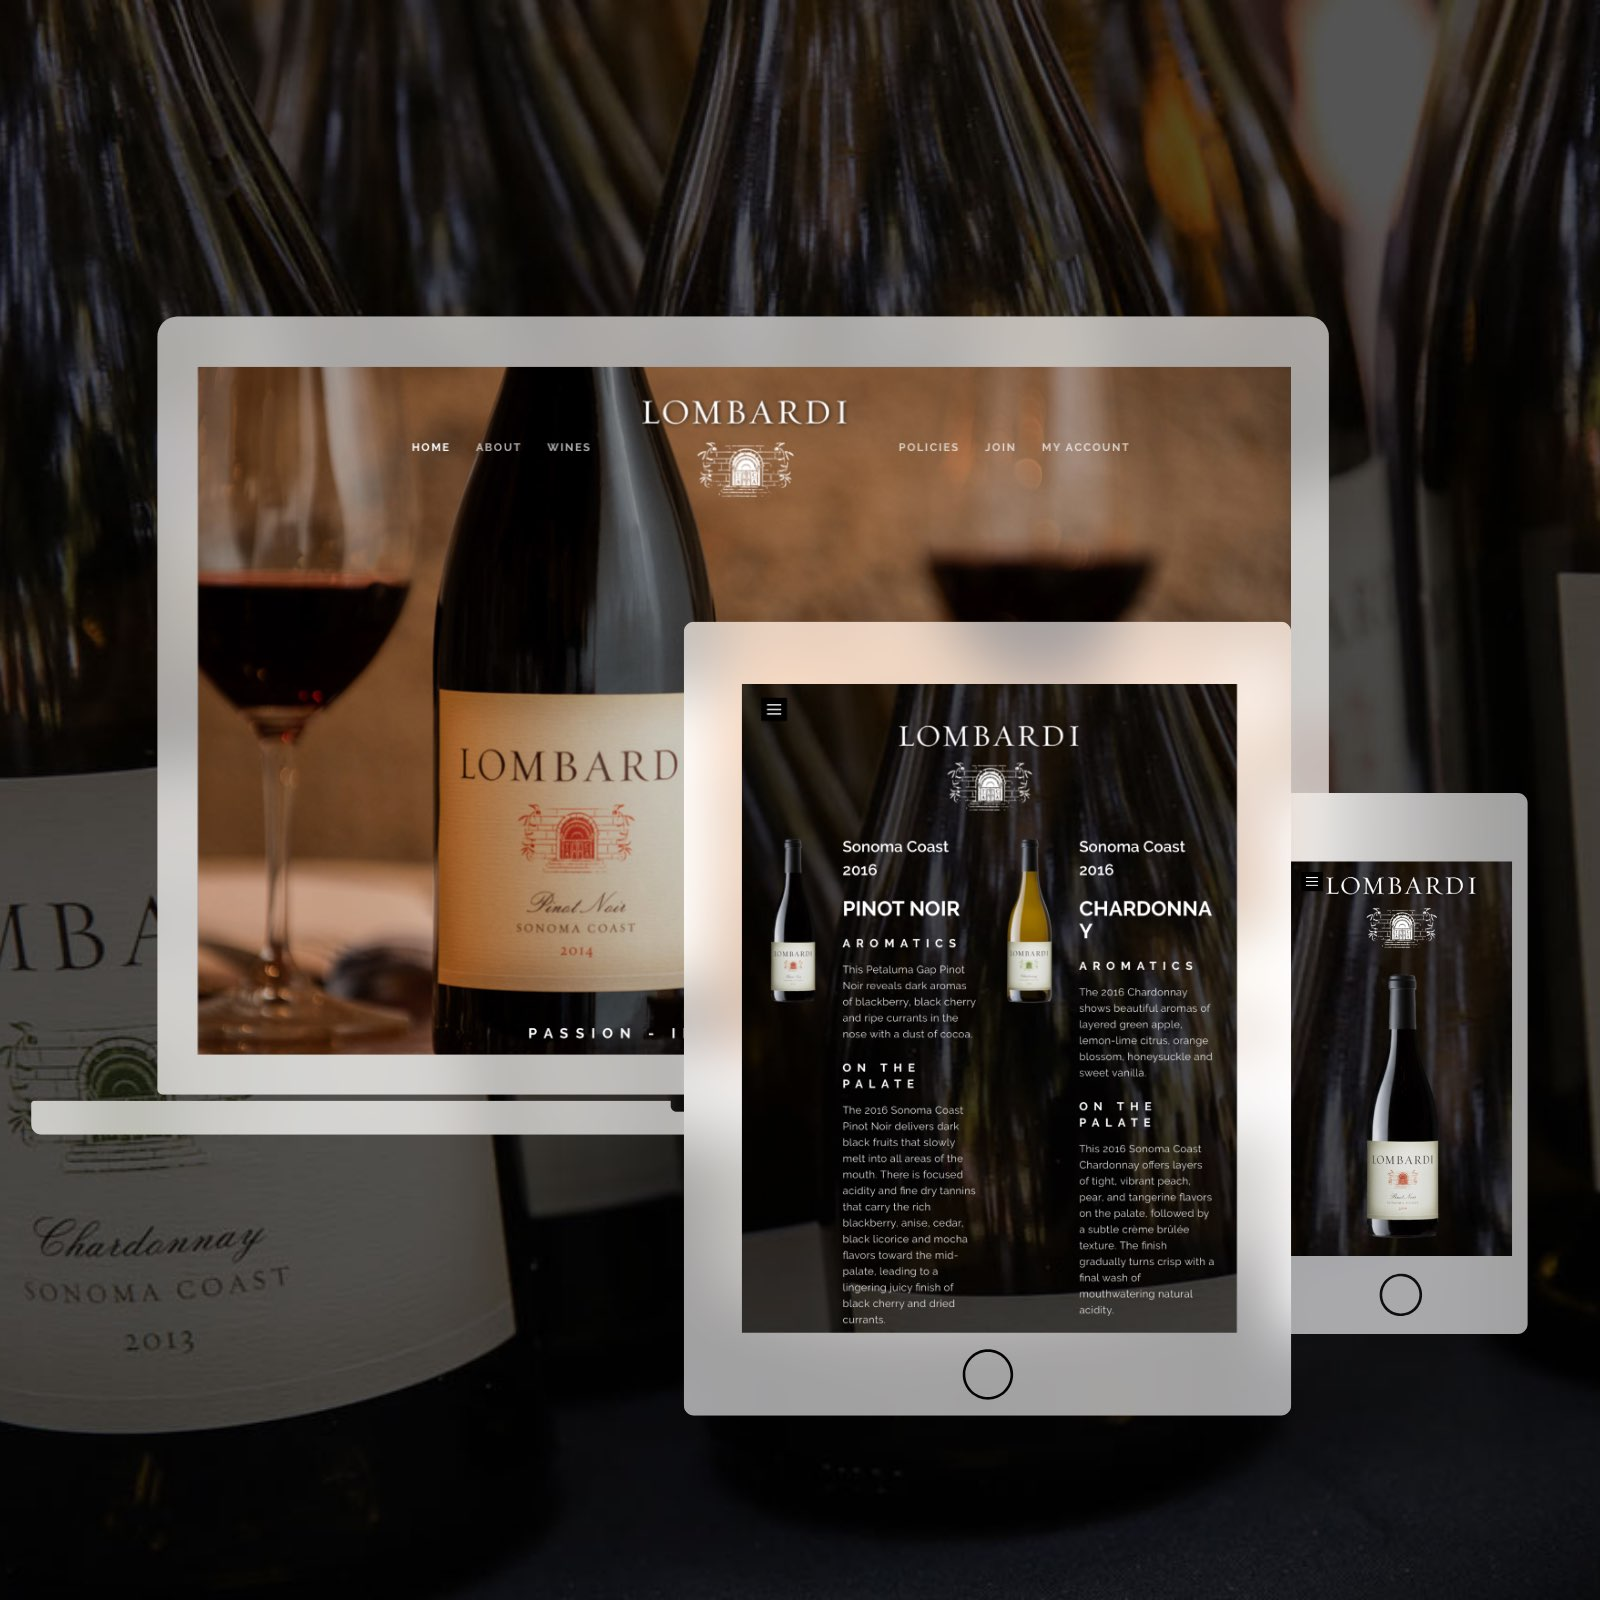 Teaser Of The Lombardi Wines Websites